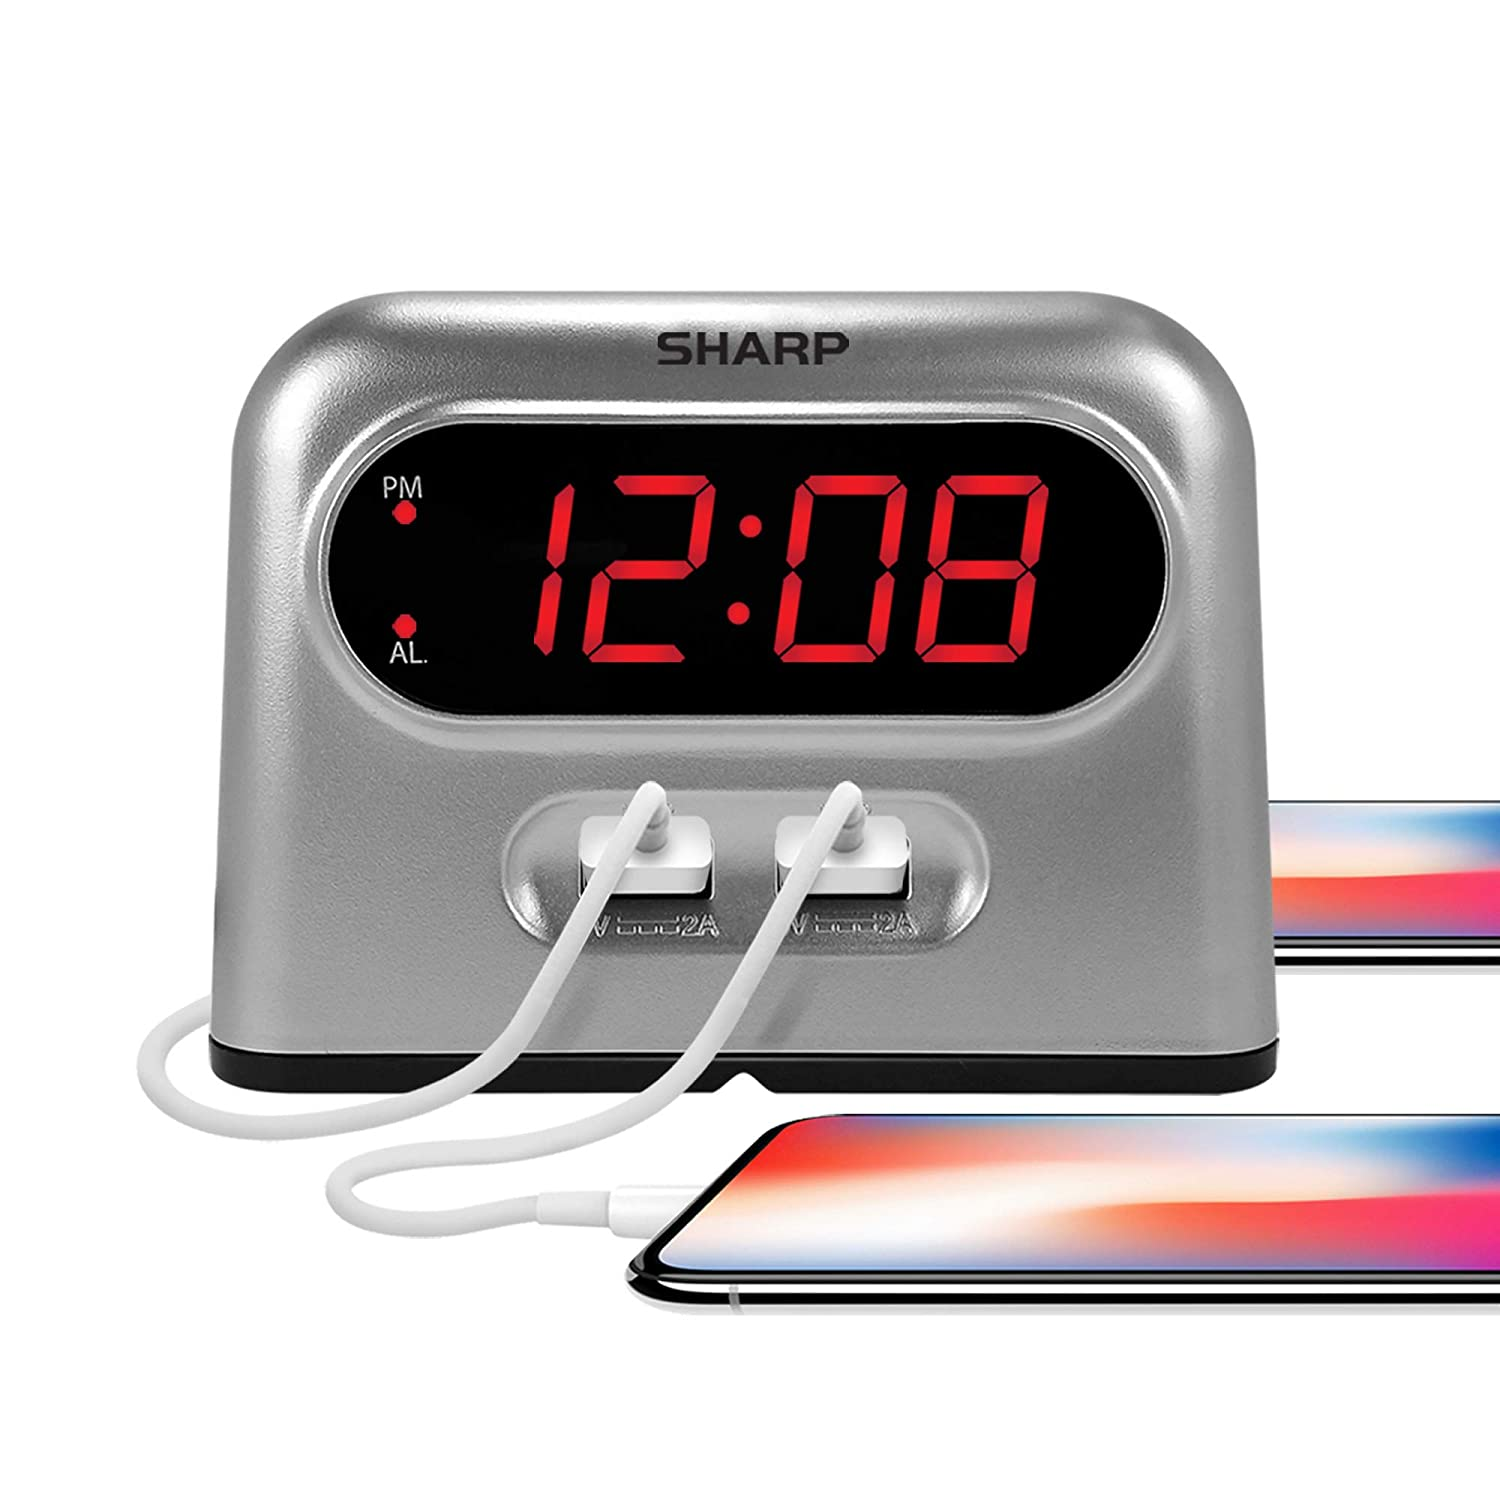 Sharp Digital Alarm Clock with 2 Ultra Fast Charging USB Charge Ports Twice as Fast as Conventional USB Chargers